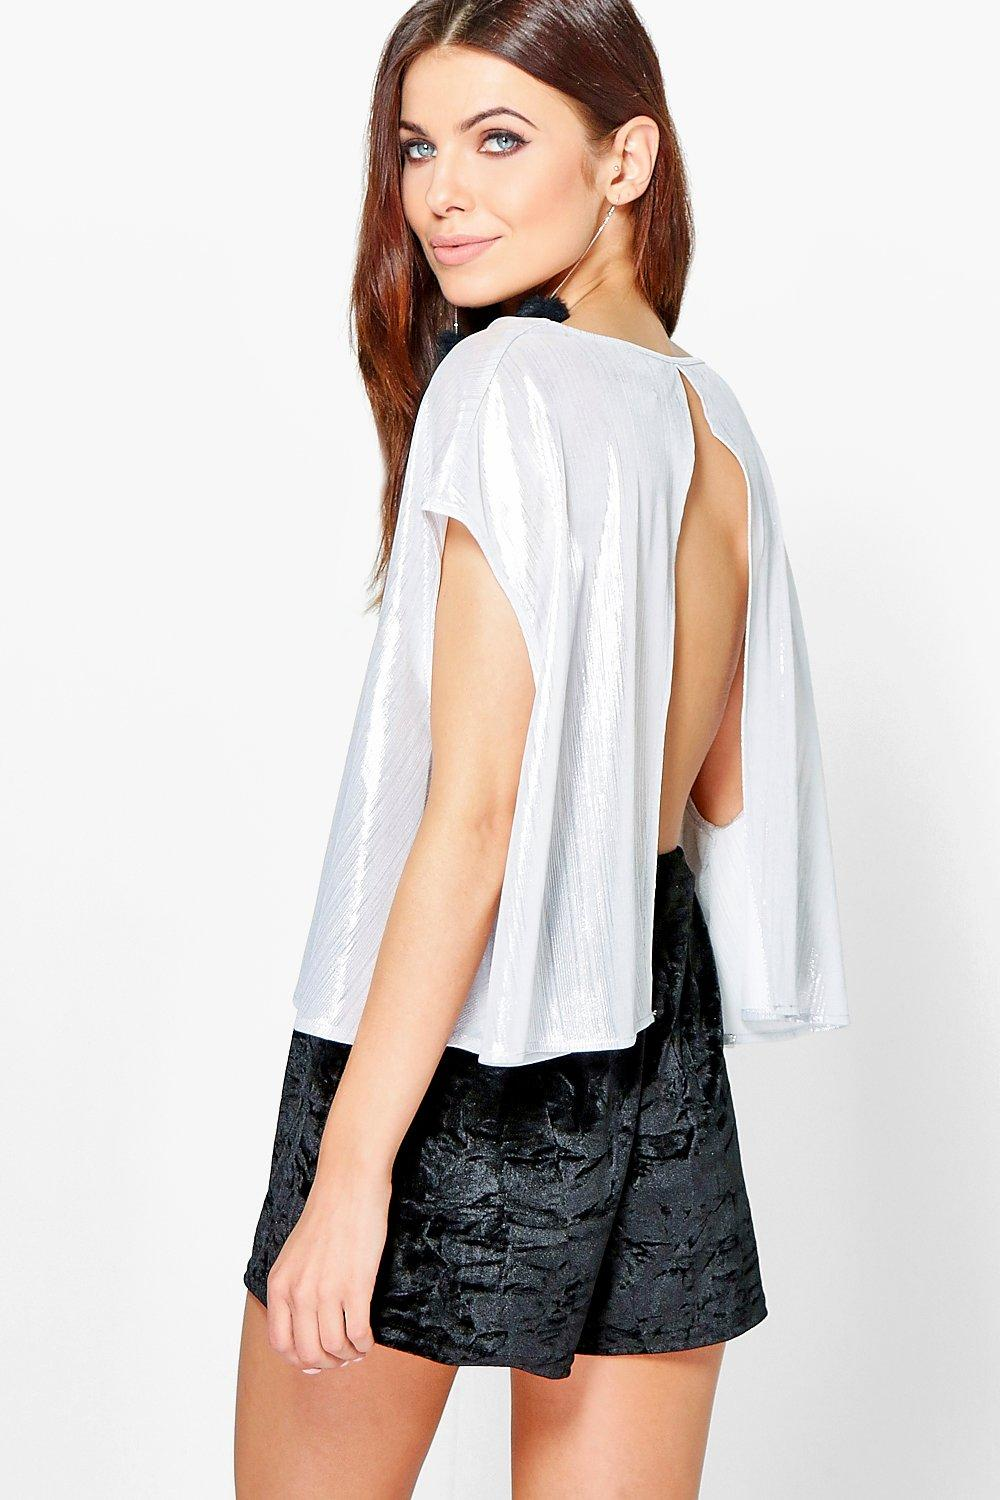 Esme Metallic Keyhole Back V Neck Top